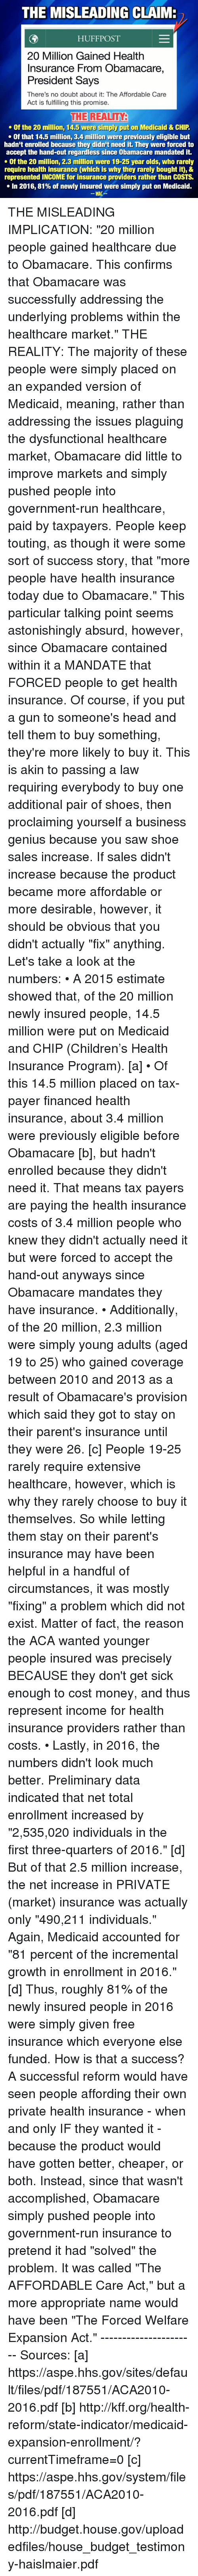 """preliminary: THE MISLEADING CLAIMR  HUFF POST  20 Million Gained Health  Insurance From Obamacare,  President Says  There's no doubt about it: The Affordable Care  Act is fulfilling this promise.  THE REALITY  Of the 20 million, 14.5 were simply put on Medicaid & CHIP  Of that 14.5 million, 3.4 million were previously eligible but  hadn't enrolled because they didn't need it. They were forced to  accept the hand-out regardless since Obamacare mandated it.  Of the 20 million, 2.3 million were 19-25 year olds, who rarely  require health insurance (which is why they rarely bought it), &  represented INCOME for insurance providers rather than COSTS.  In 2016, 81% of newly insured were simply put on Medicaid.  WAC THE MISLEADING IMPLICATION: """"20 million people gained healthcare due to Obamacare. This confirms that Obamacare was successfully addressing the underlying problems within the healthcare market.""""  THE REALITY: The majority of these people were simply placed on an expanded version of Medicaid, meaning, rather than addressing the issues plaguing the dysfunctional healthcare market, Obamacare did little to improve markets and simply pushed people into government-run healthcare, paid by taxpayers.  People keep touting, as though it were some sort of success story, that """"more people have health insurance today due to Obamacare."""" This particular talking point seems astonishingly absurd, however, since Obamacare contained within it a MANDATE that FORCED people to get health insurance. Of course, if you put a gun to someone's head and tell them to buy something, they're more likely to buy it. This is akin to passing a law requiring everybody to buy one additional pair of shoes, then proclaiming yourself a business genius because you saw shoe sales increase. If sales didn't increase because the product became more affordable or more desirable, however, it should be obvious that you didn't actually """"fix"""" anything.   Let's take a look at the numbers:  • A 2015 estimate sho"""